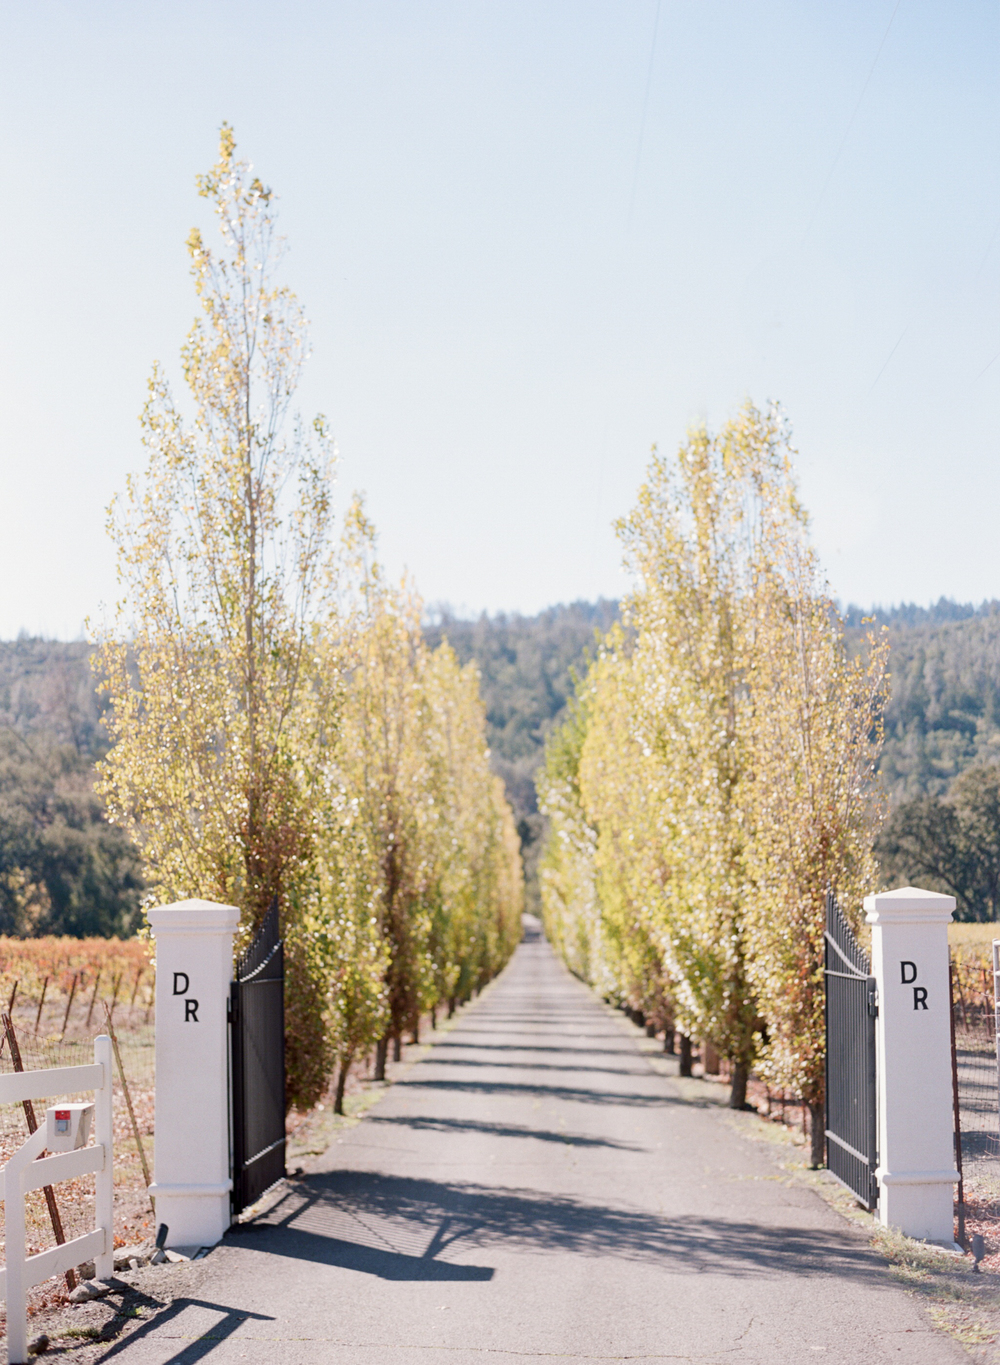 Entrance to Durham Ranch in Napa Valley, California; Sylvie Gil Photography